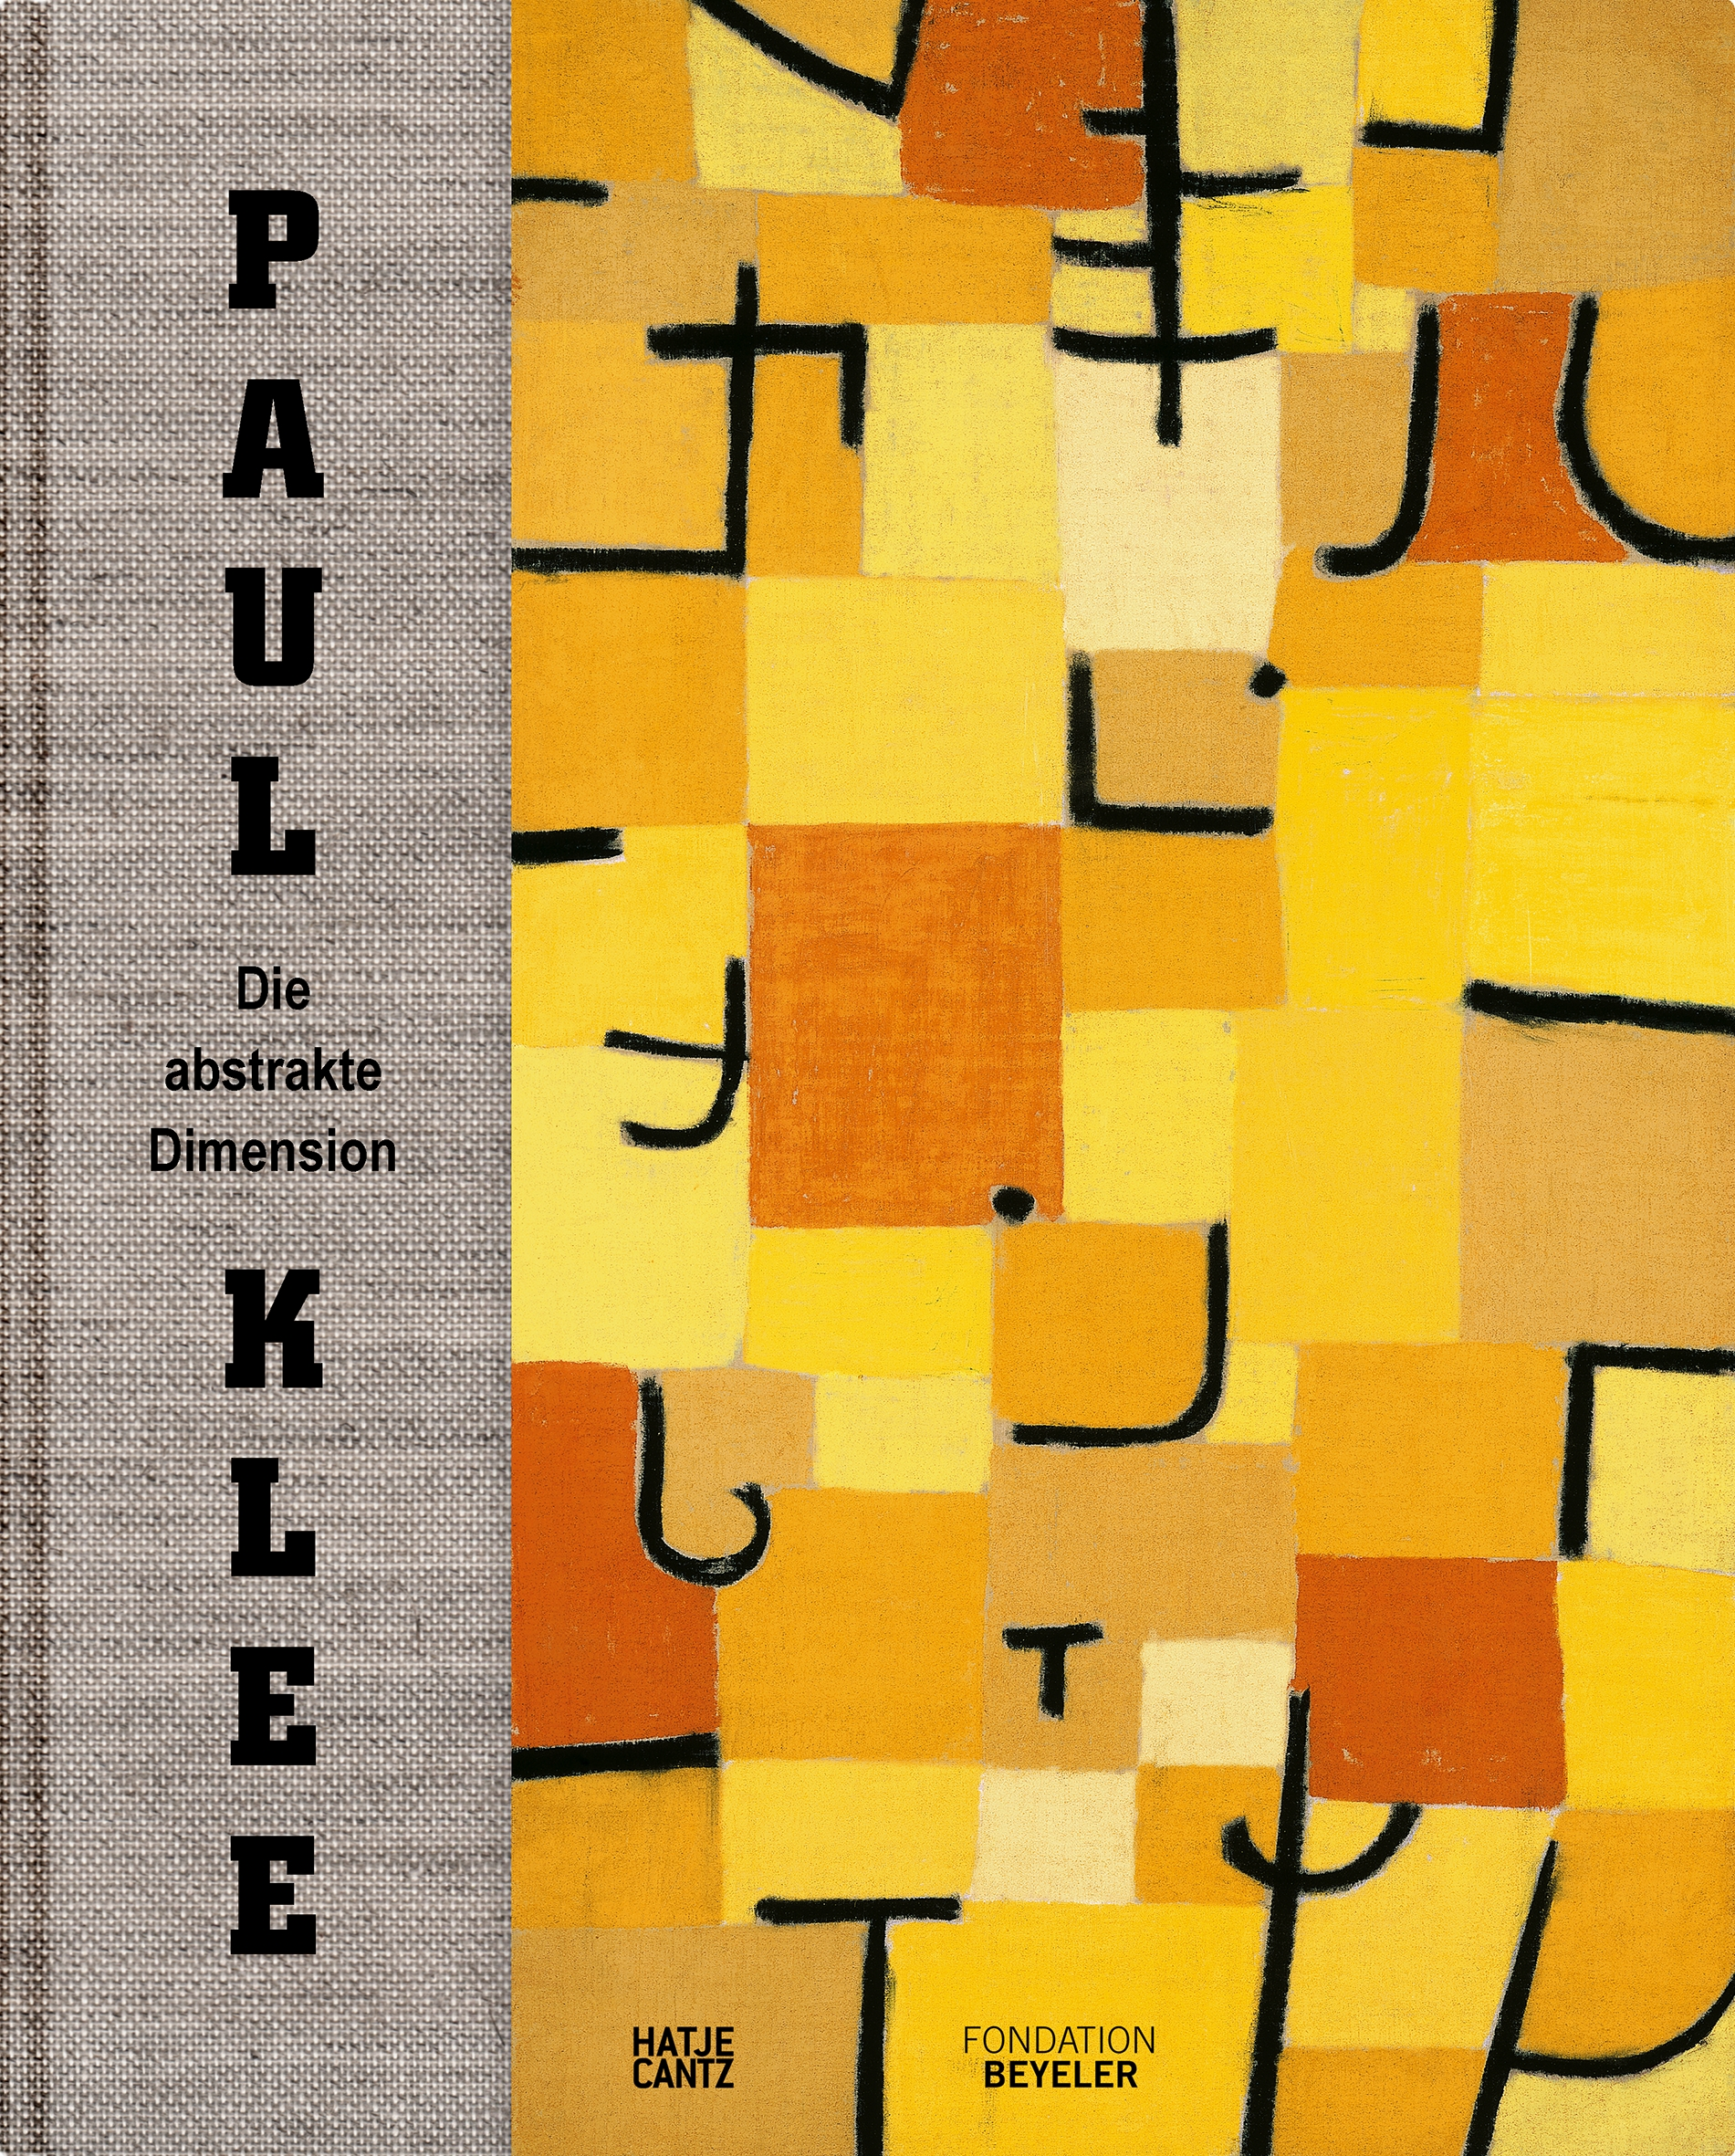 Paul Klee. Die abstrakte Dimension © Cover Hatje Cantz